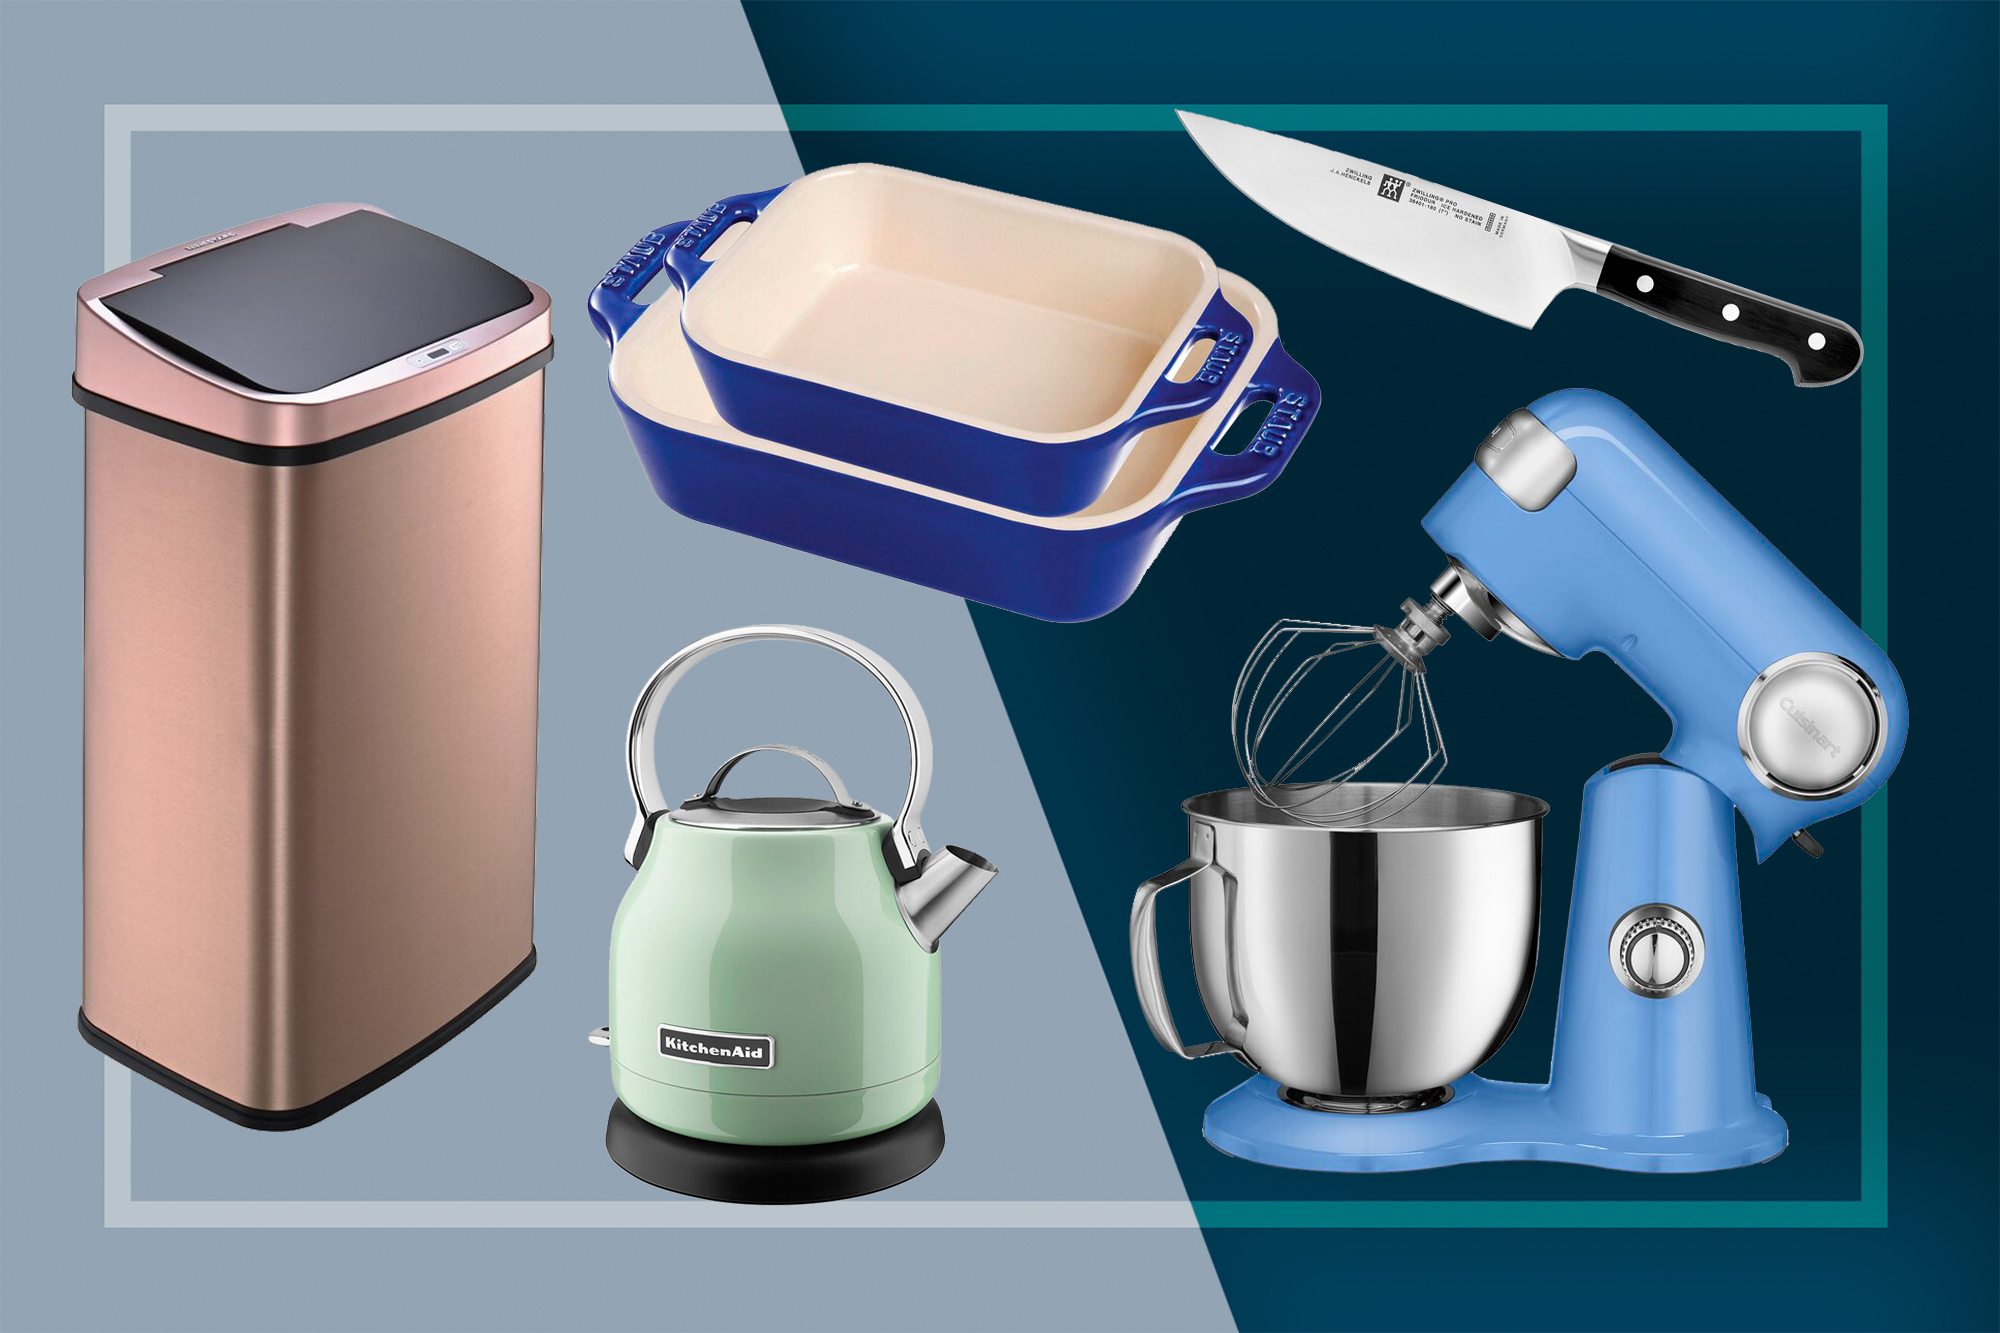 Wayfair items: Trash can, baking dishes, tea kettle, chef's knife, stand mixer